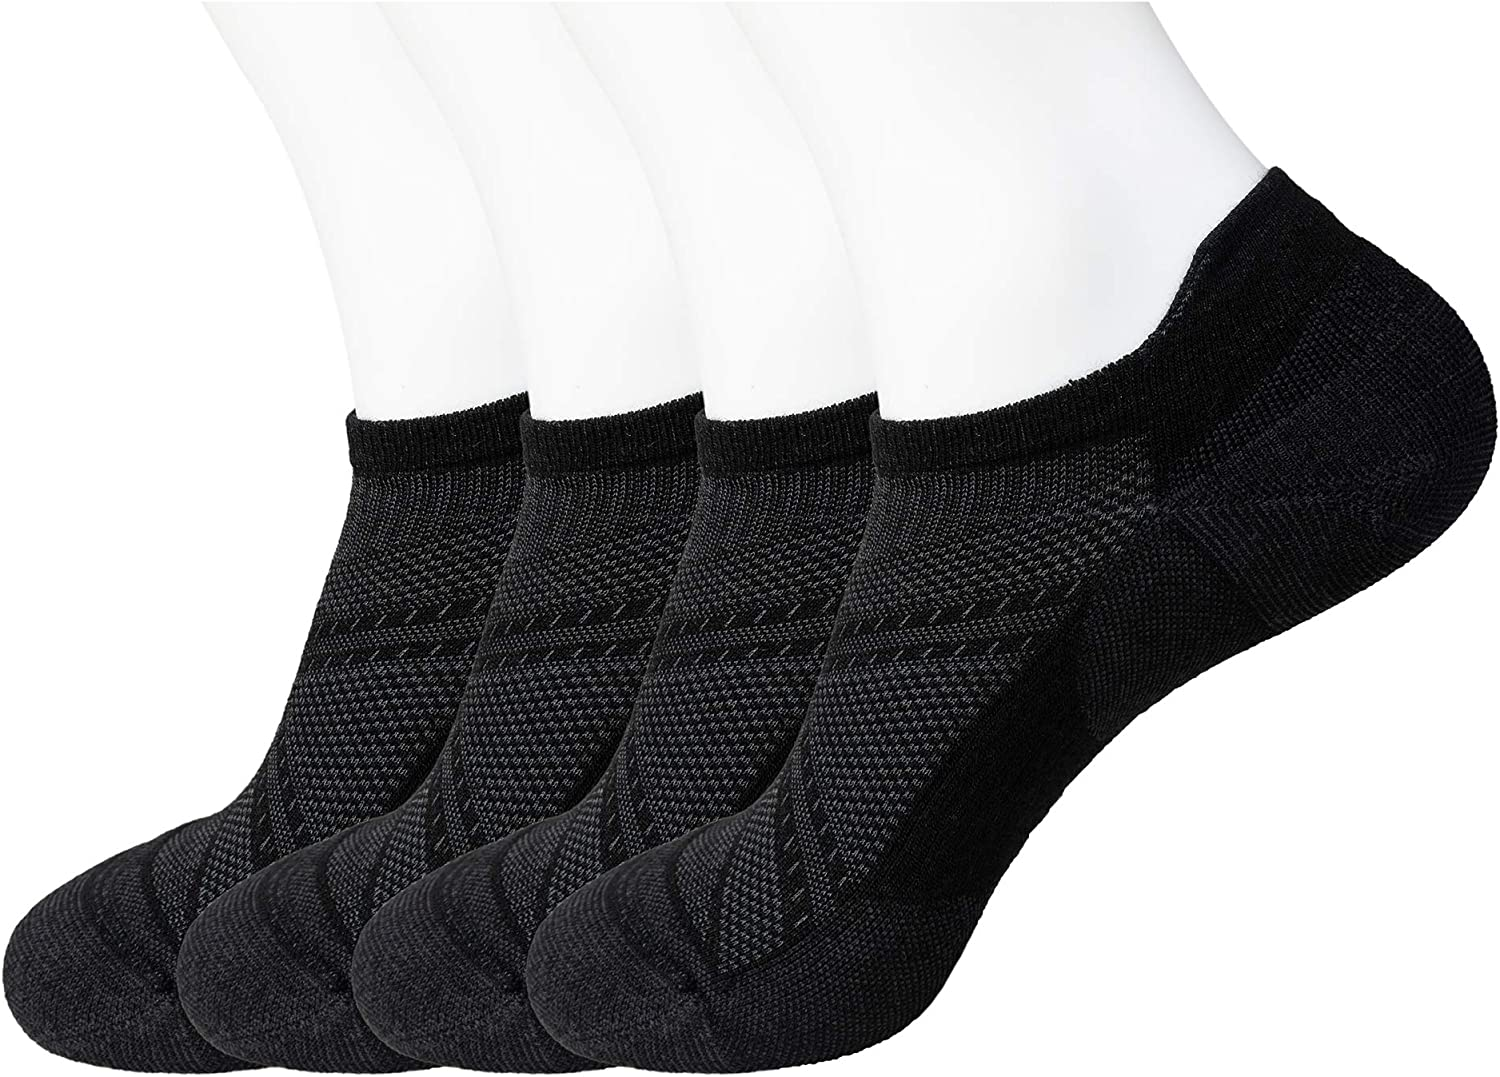 ECOEY ULTIMATE No Show Merino Wool Socks for Men and Women 2//4 Pairs Size 4.5-11.5